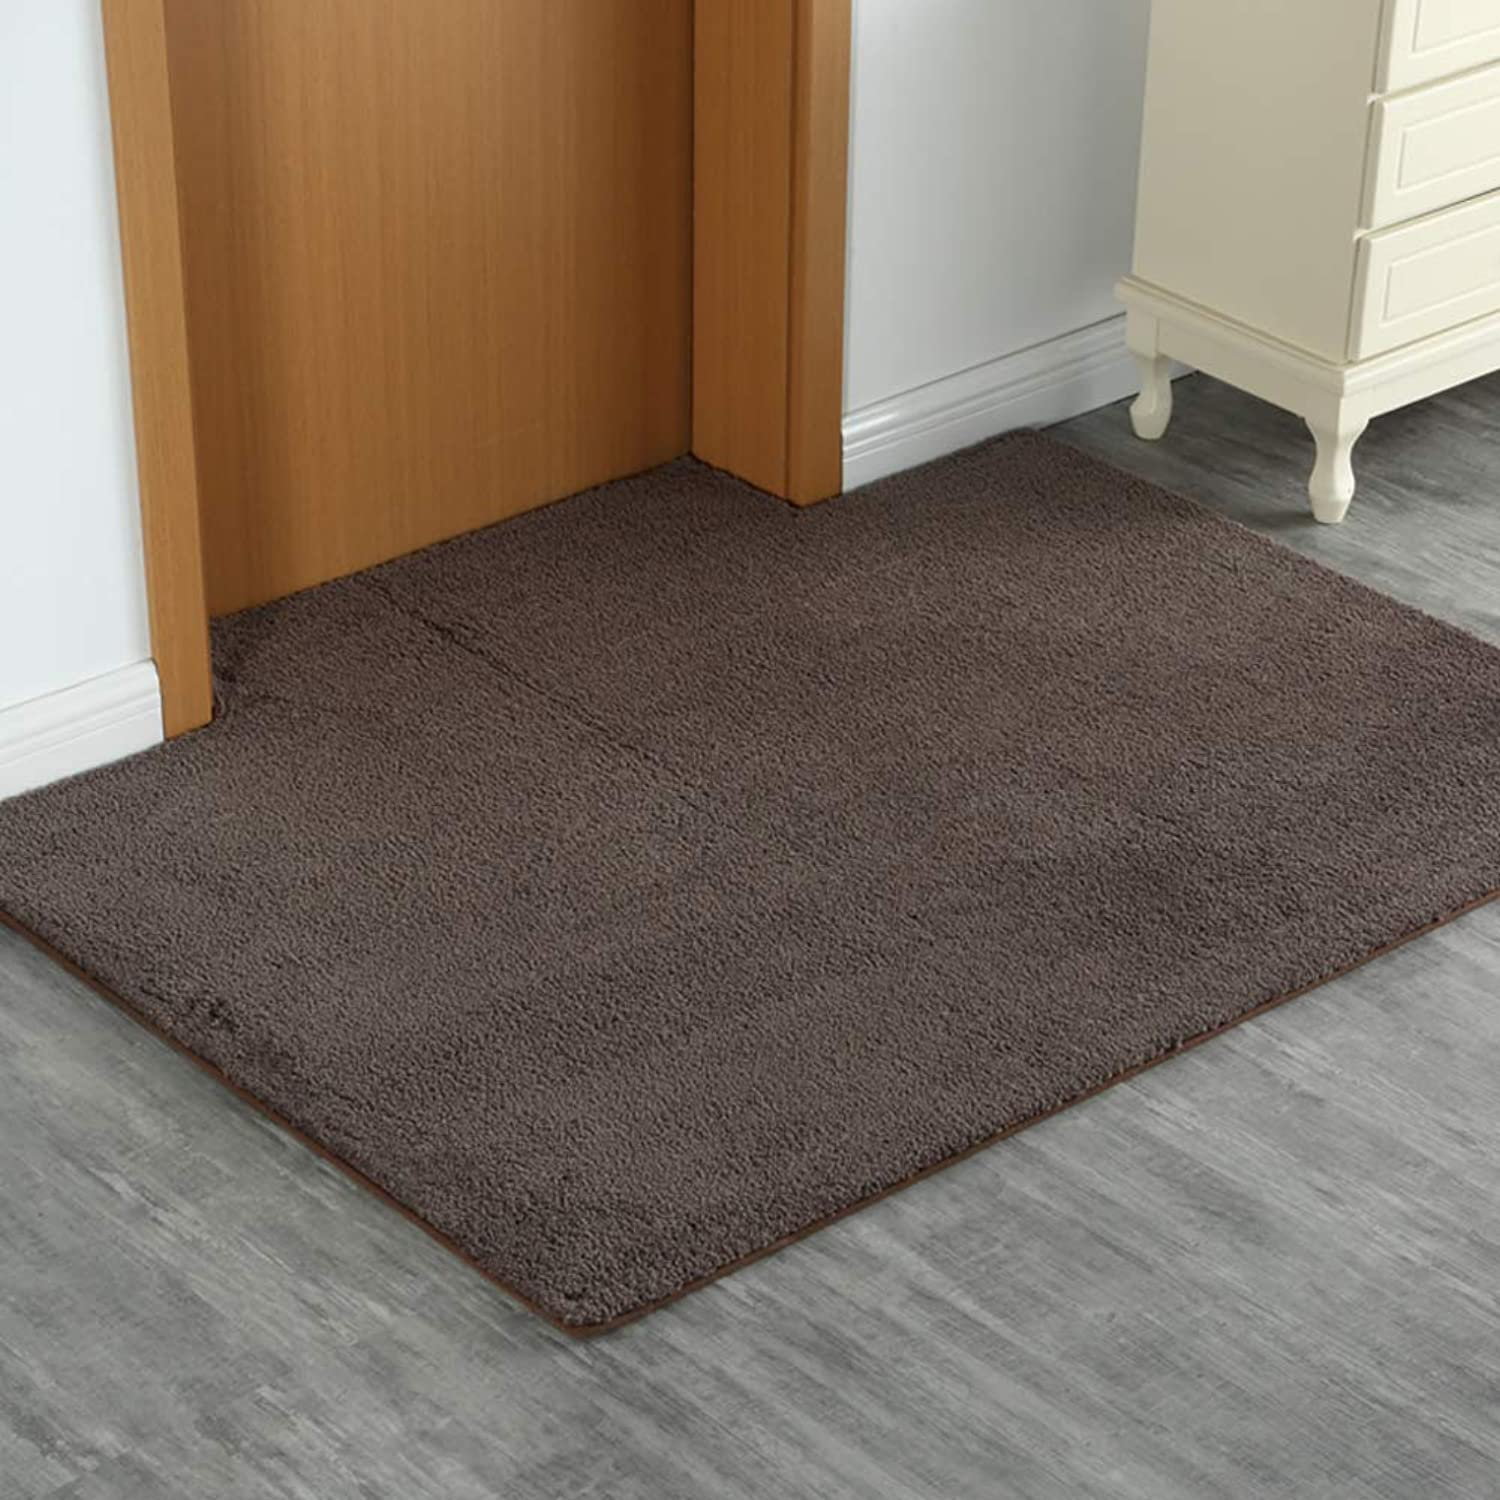 Doormat,Door Non-Slip mat Household Durable Easy to Clean for The Door.-Brown 20x31inch